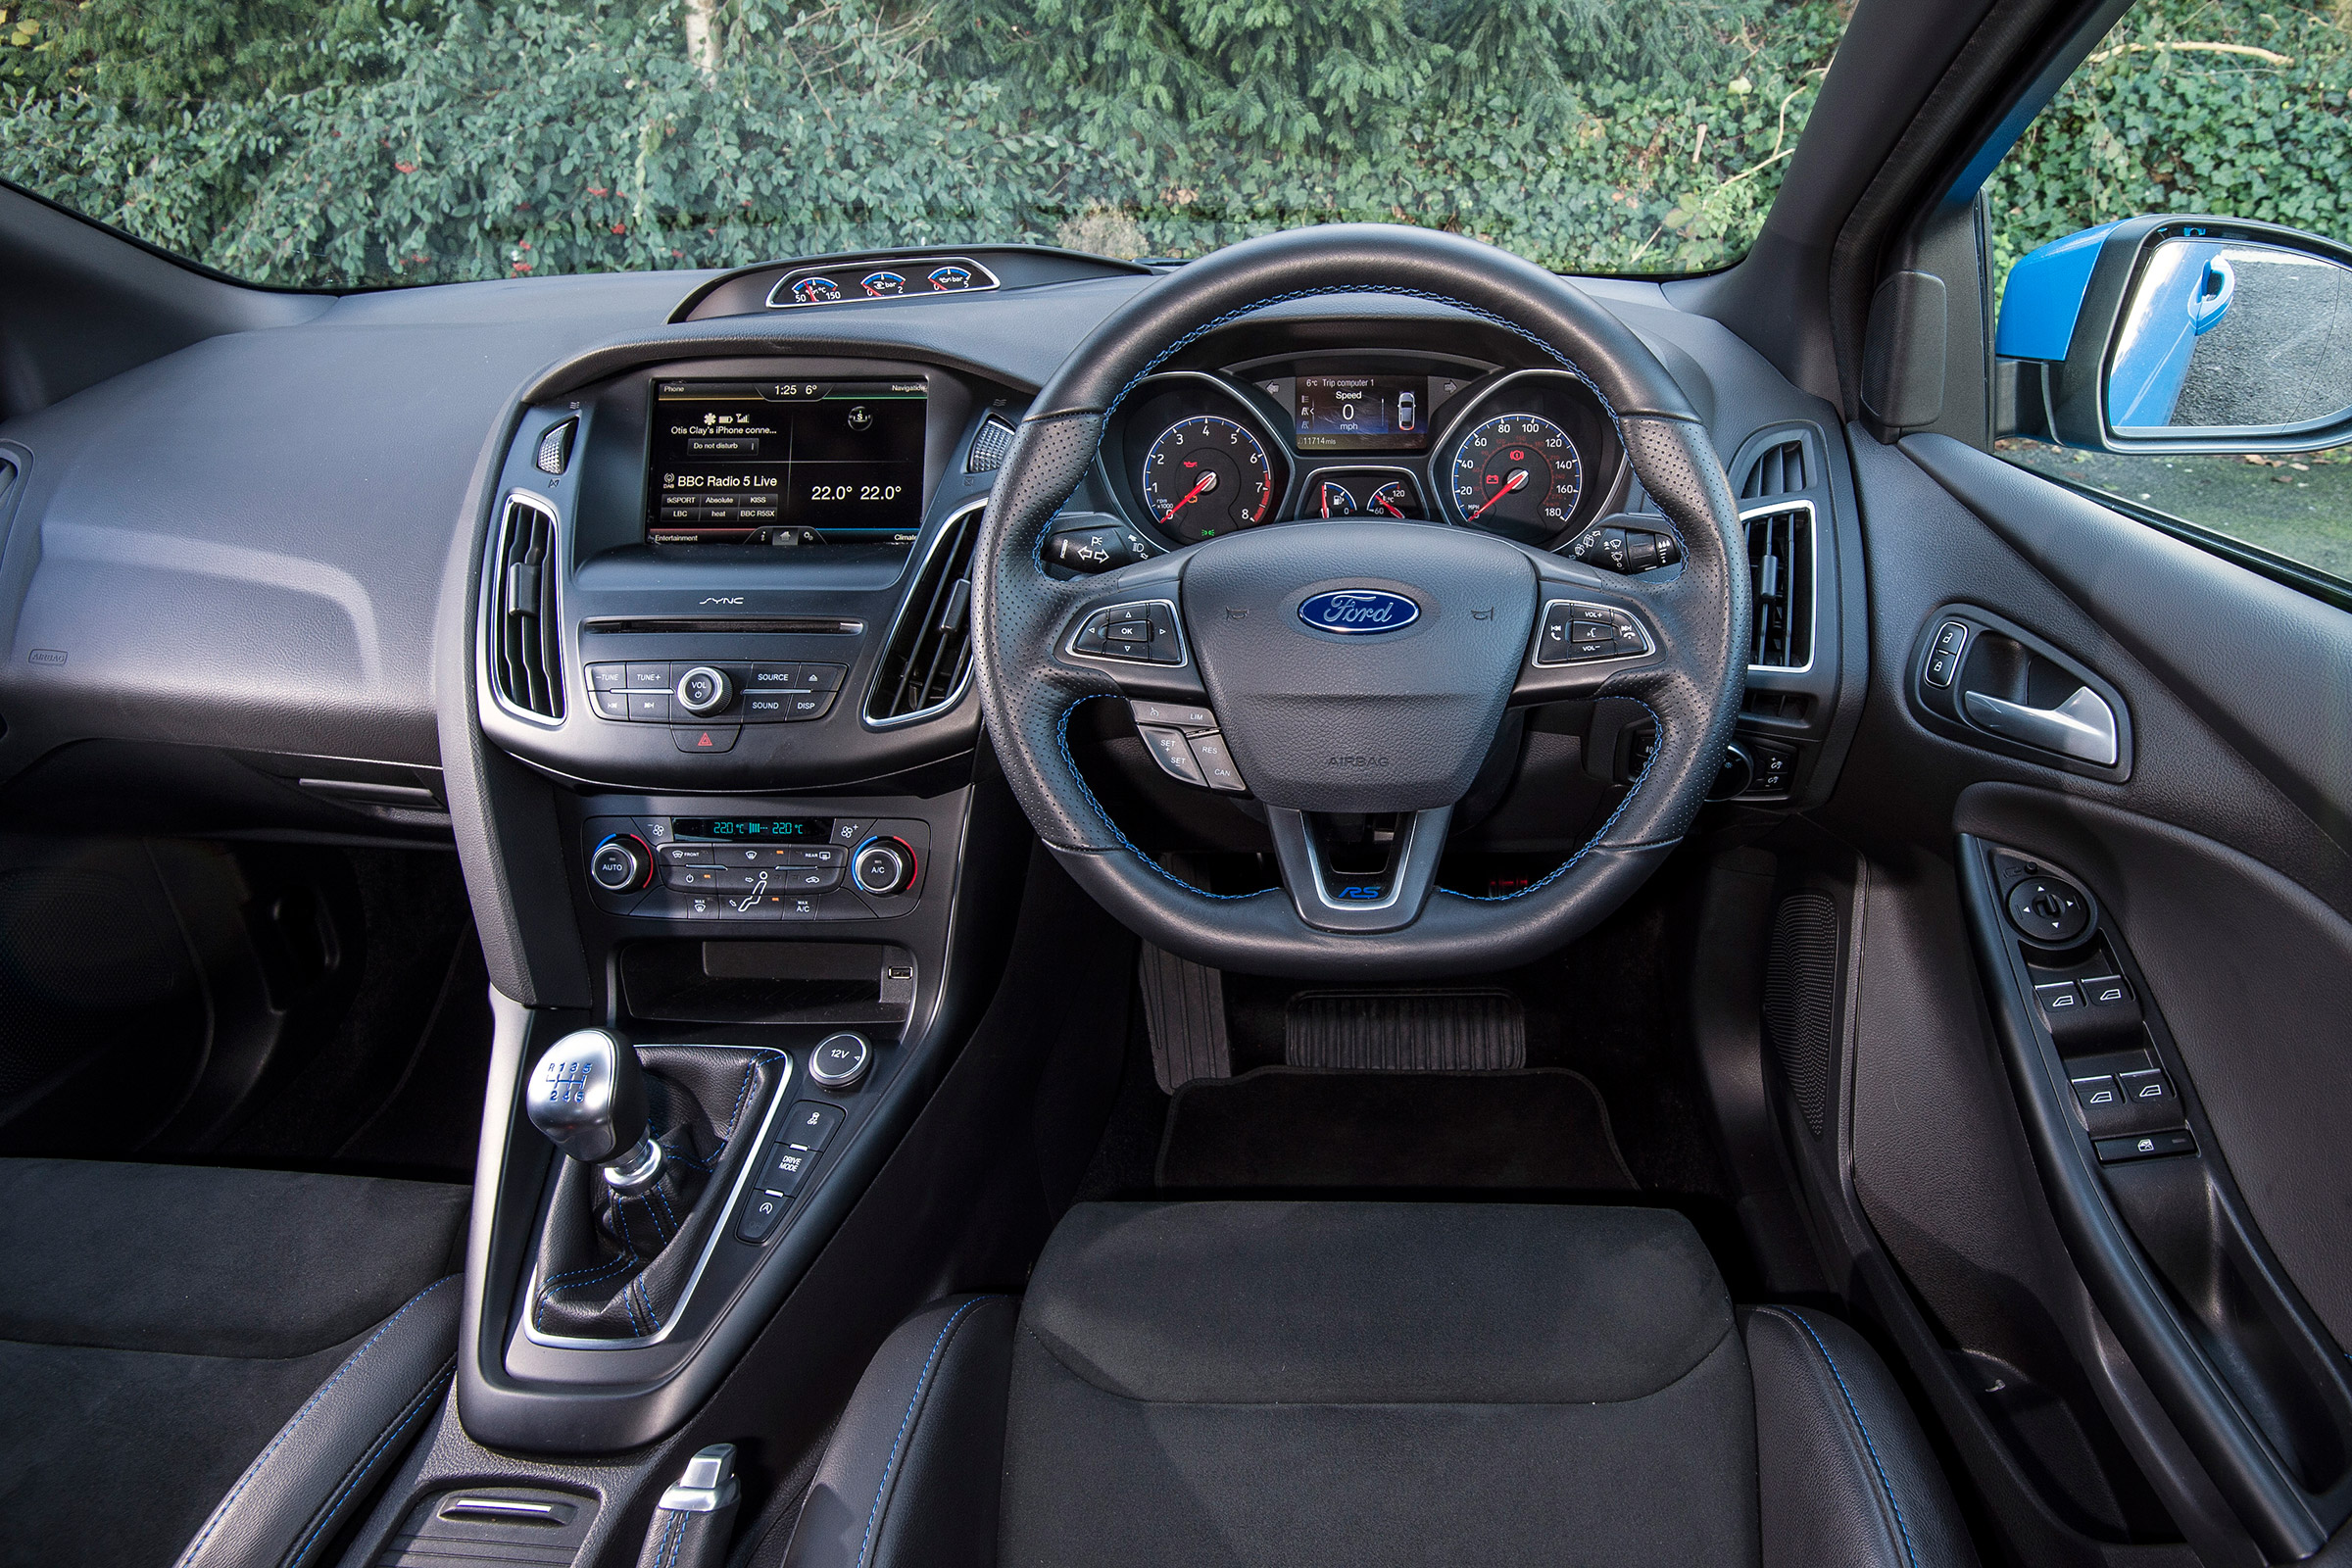 2017 Ford Focus RS Interior Driver Cockpit Steering And Dash (Photo 10 of 23)